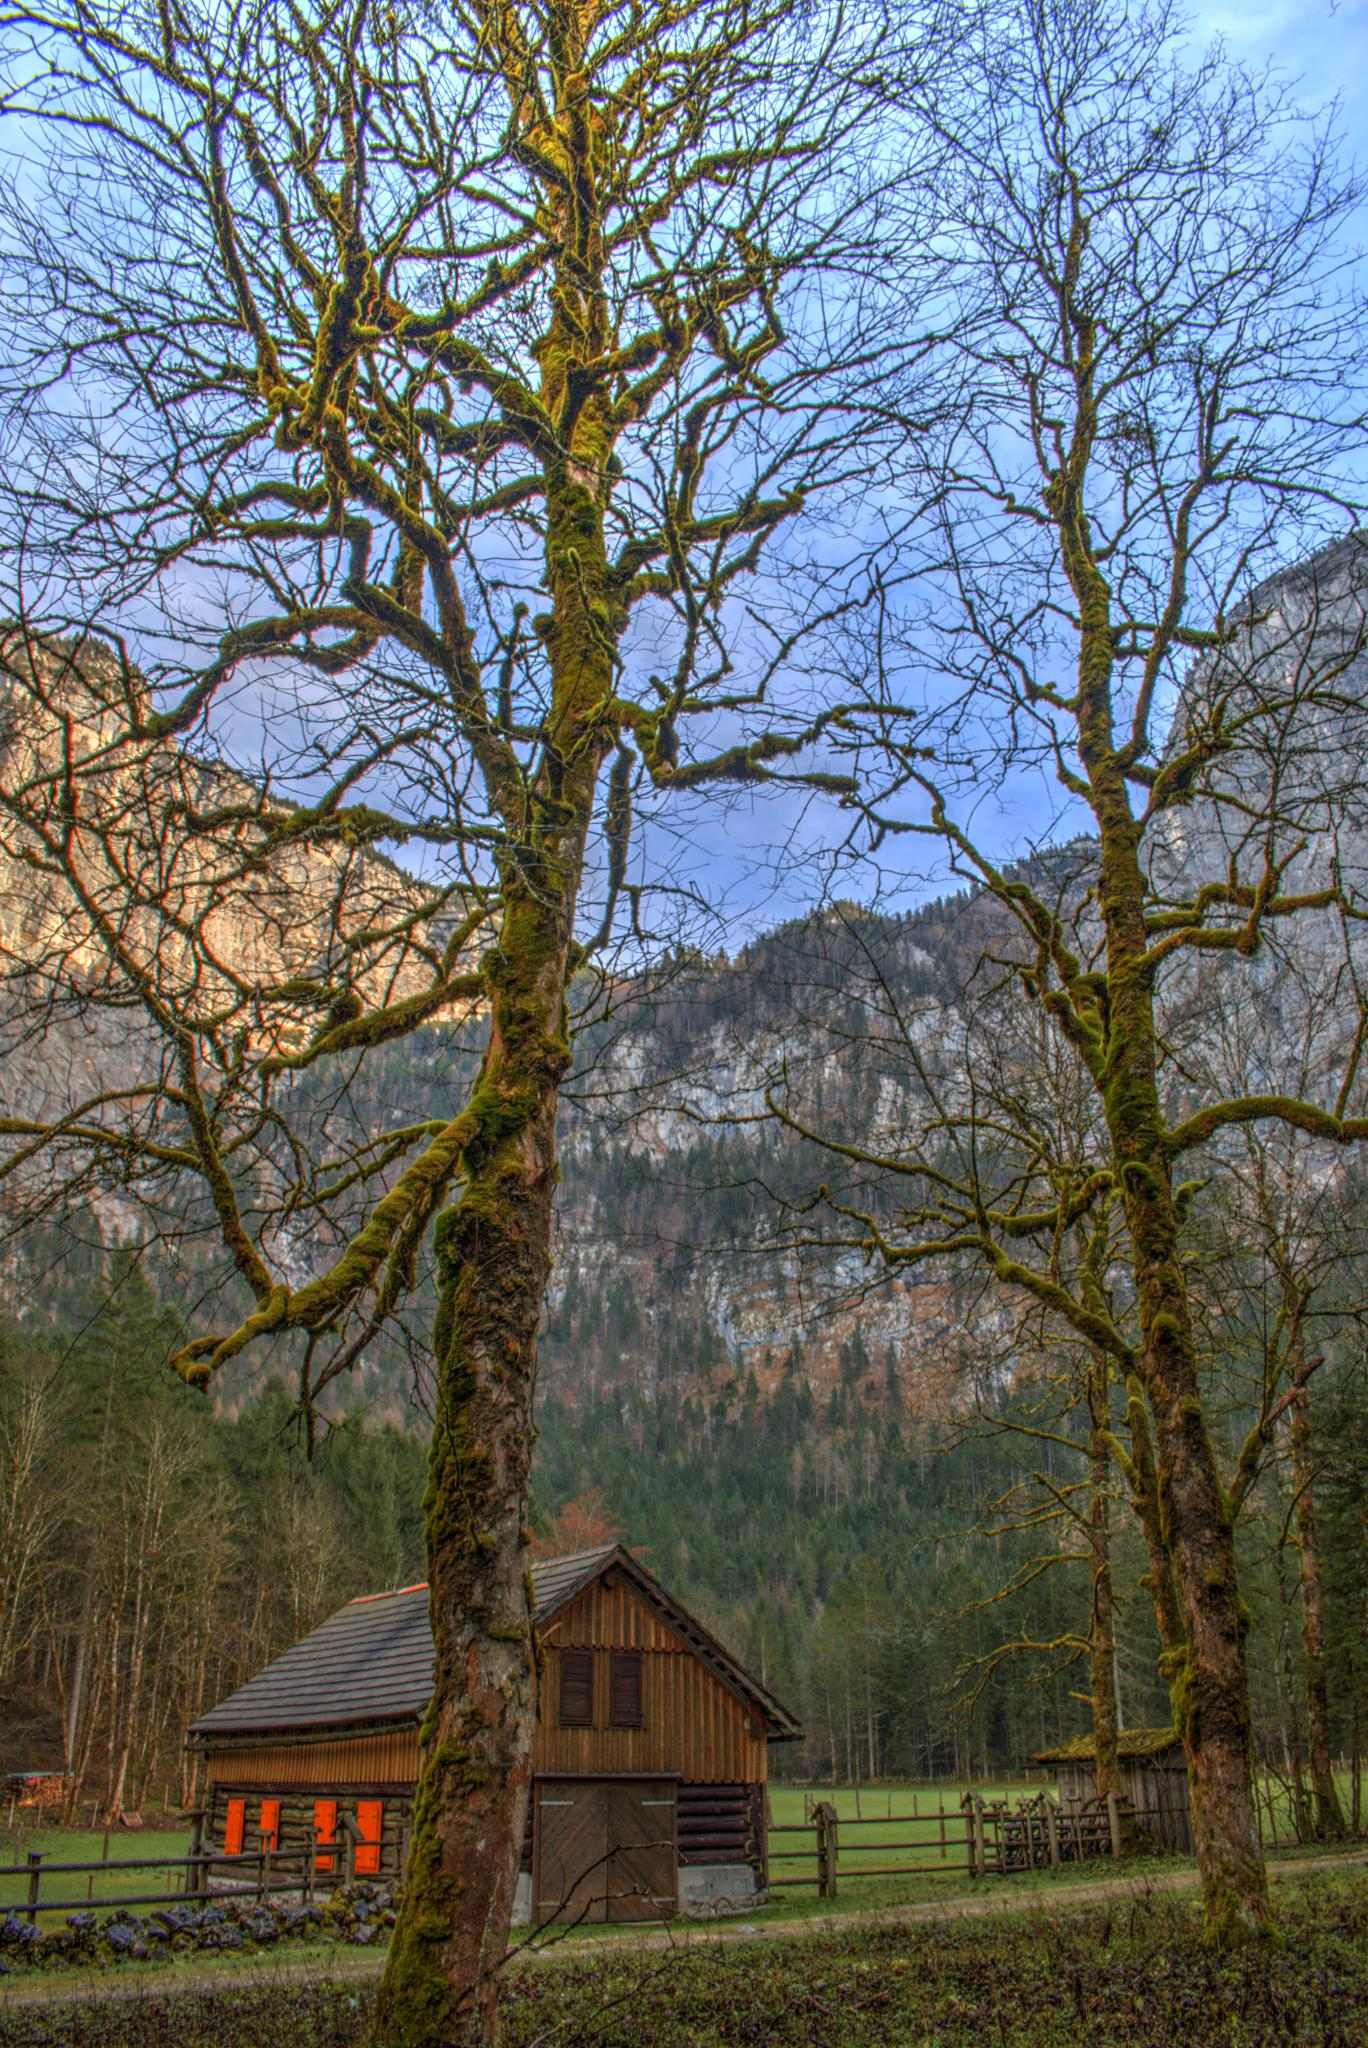 Forest farm by peter.cseke